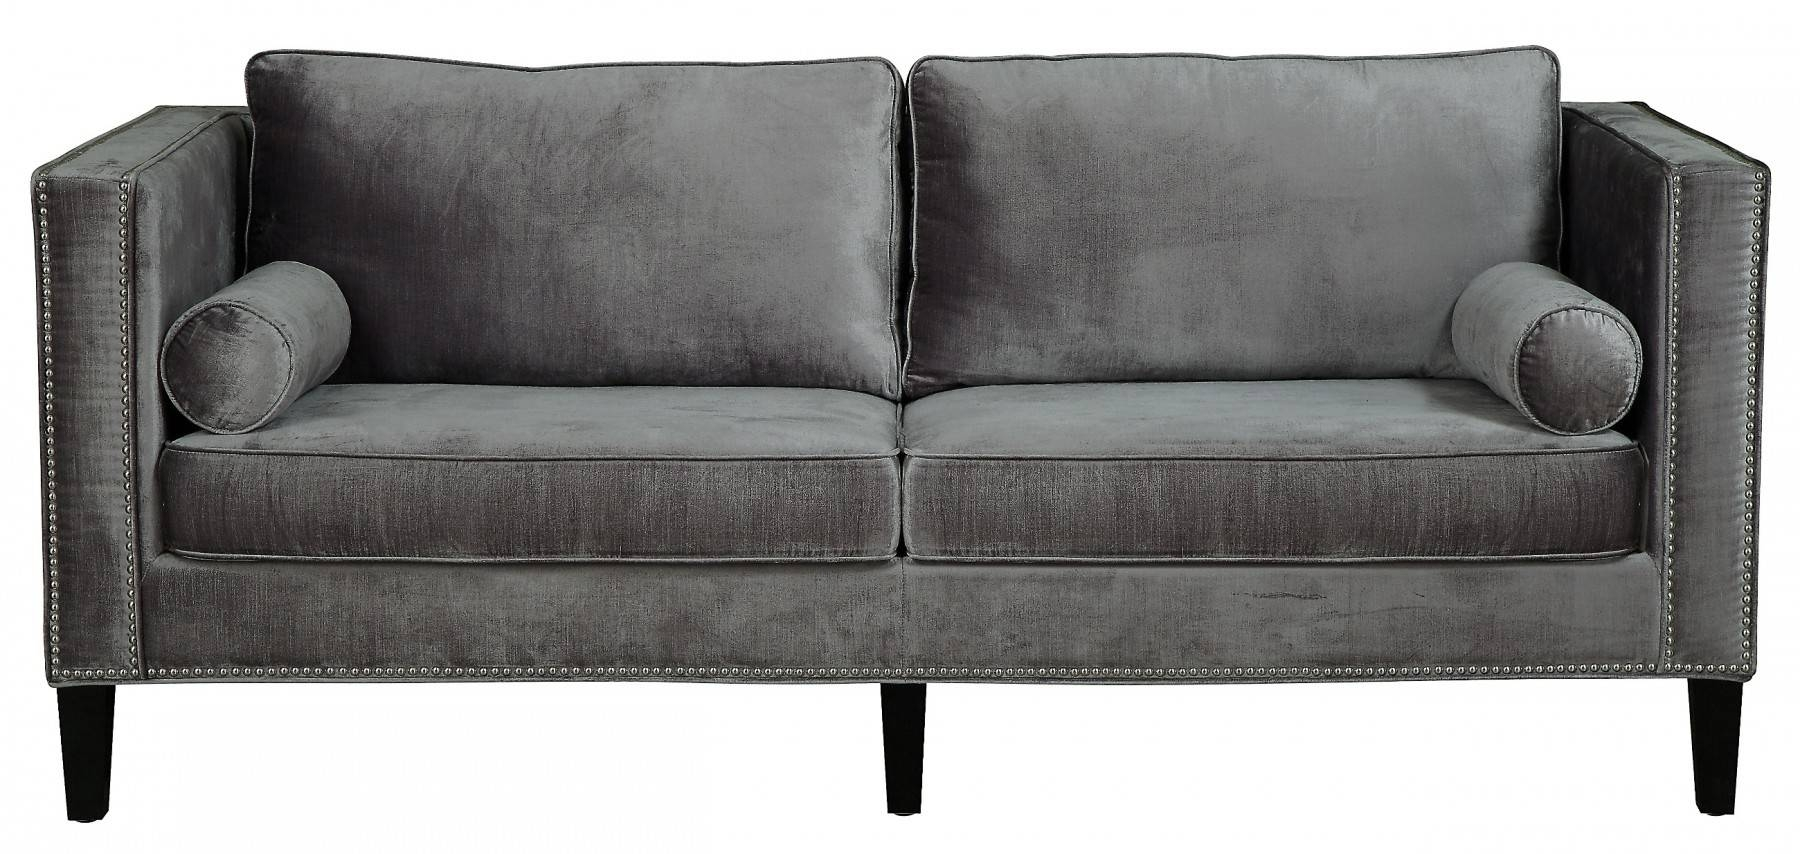 Design Ideas For Grey Velvet Sofa #18886 in Barrister Velvet Sofas (Image 12 of 15)